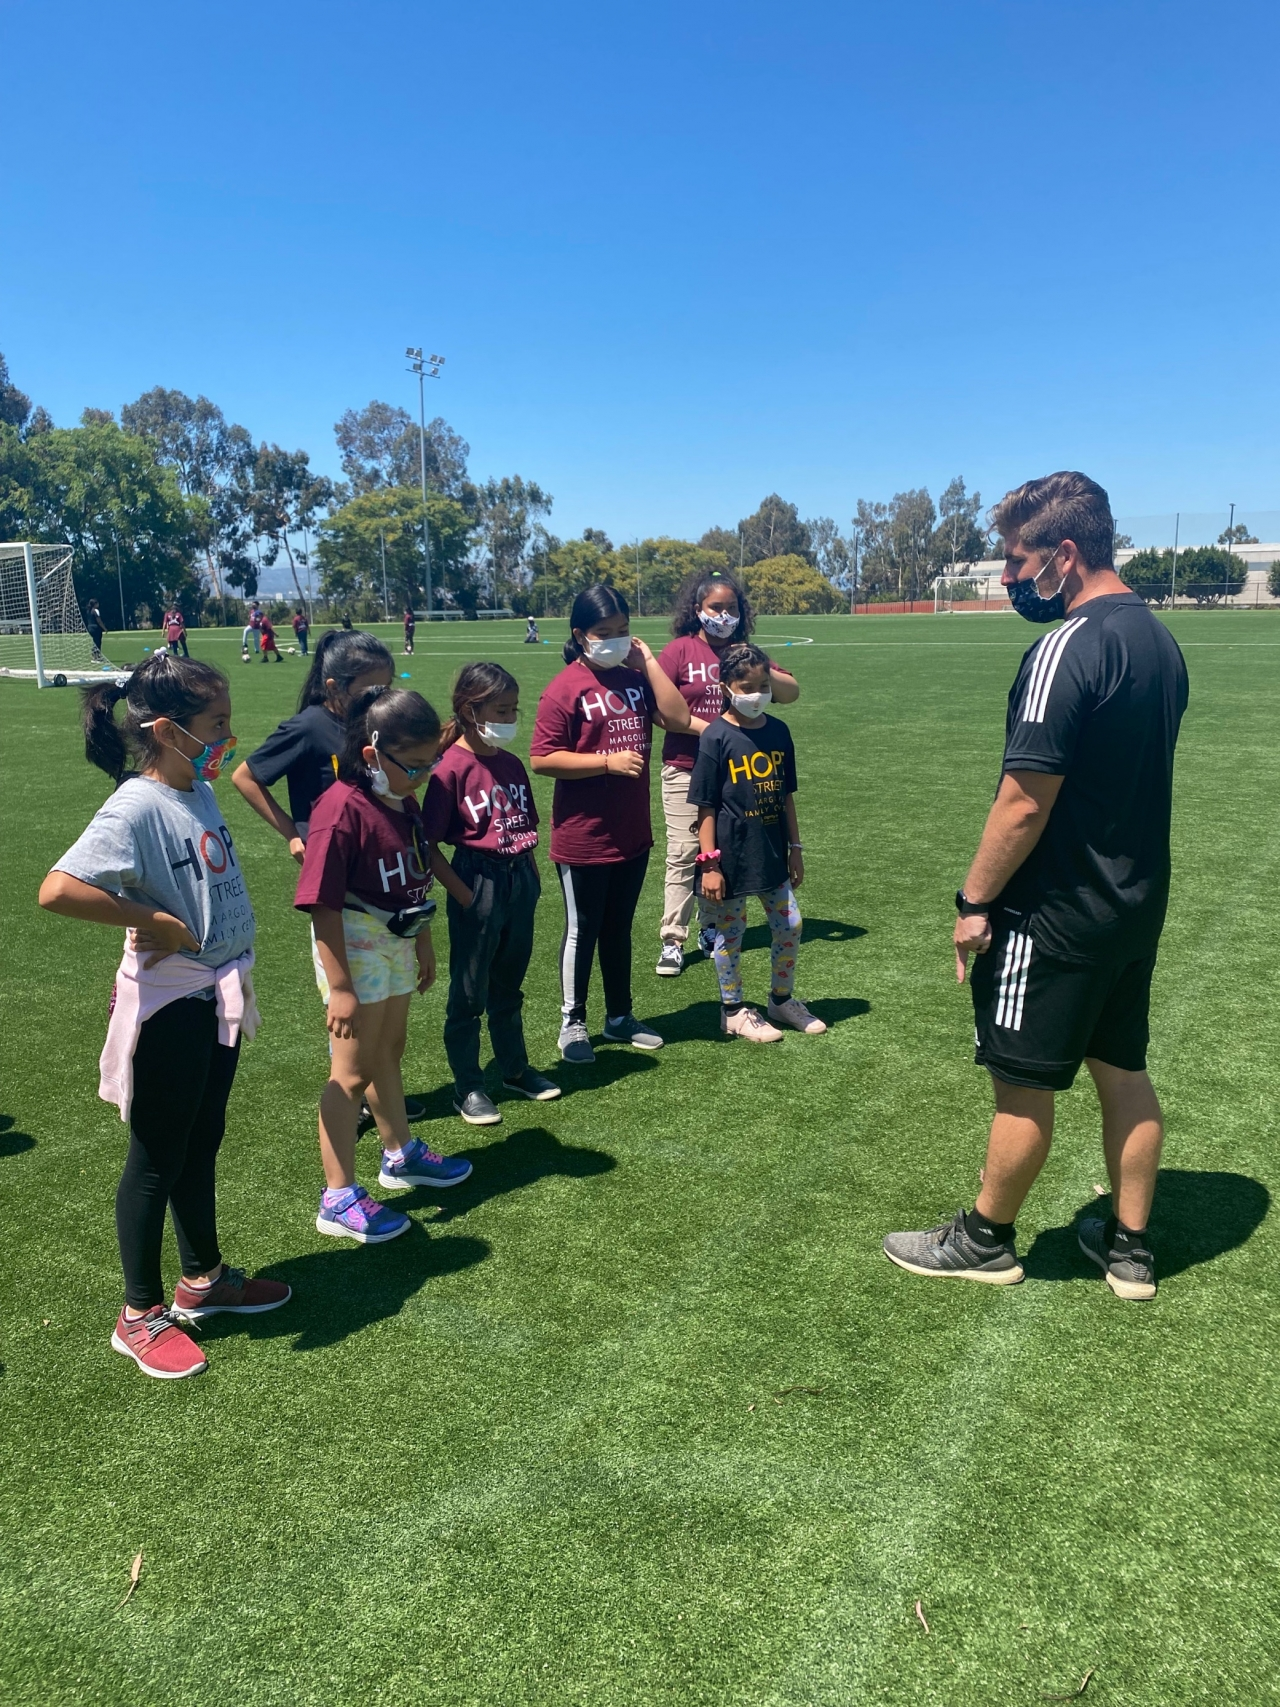 Youth participants enrolled in the Hope Street summer program spend the afternoon enjoying a specially designed LA Galaxy Youth Soccer Clinic, working directly with club coaching staff and LA Galaxy mascot Cozmo at Dignity Health Sports Park on July 9, 2021.